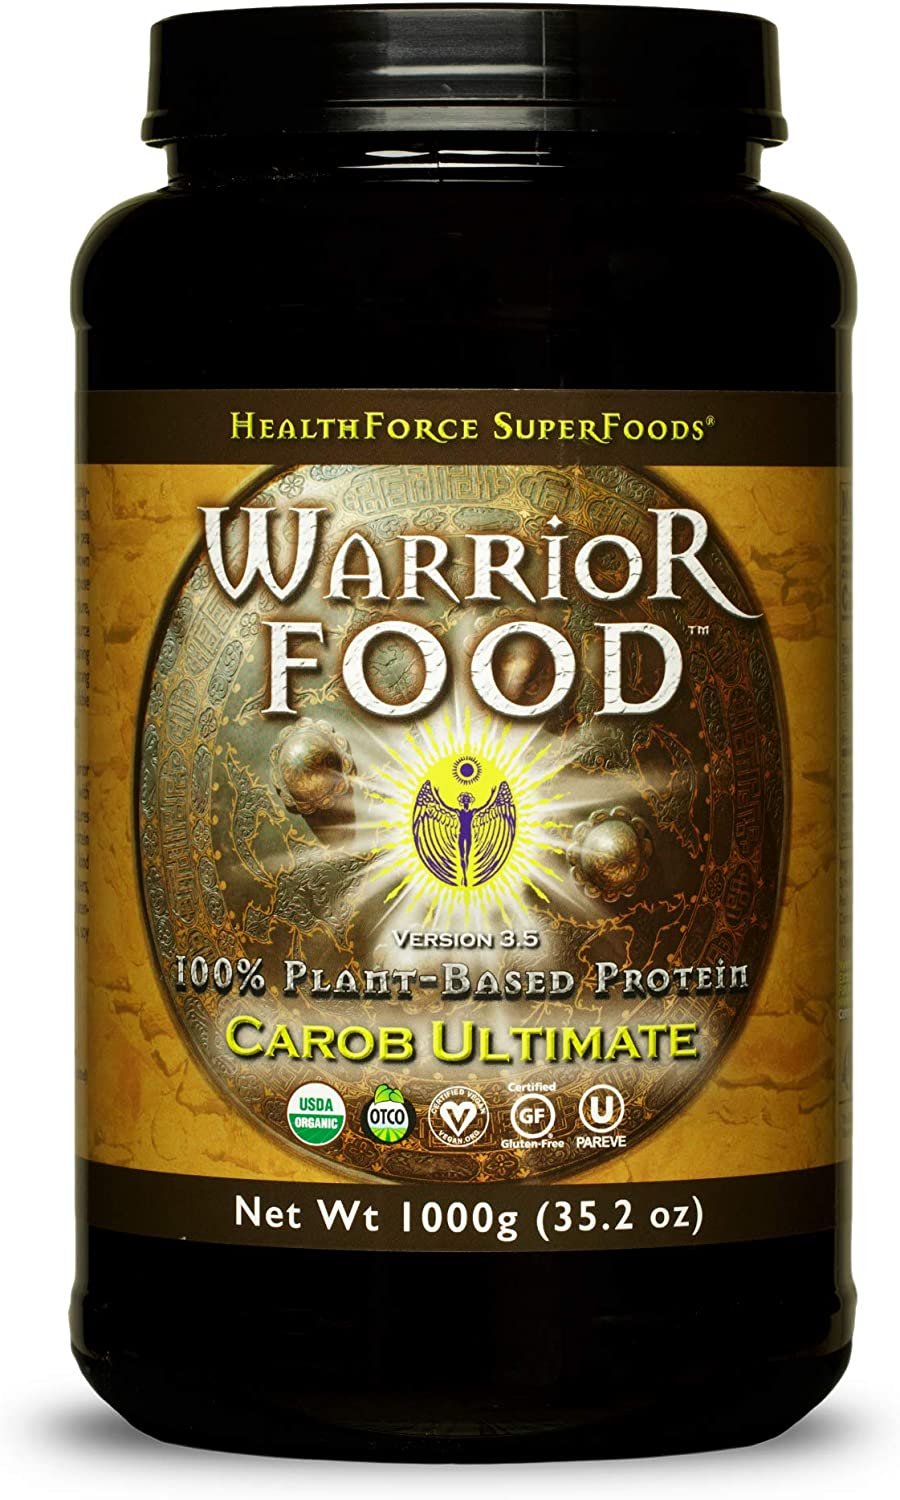 HealthForce SuperFoods Warrior Food, Carob Flavor - 1000 Grams - All-Natural, Plant-Based Protein Powder - Easy to Digest - Organic, Non-GMO, Vegan, Gluten Free - 50 Servings